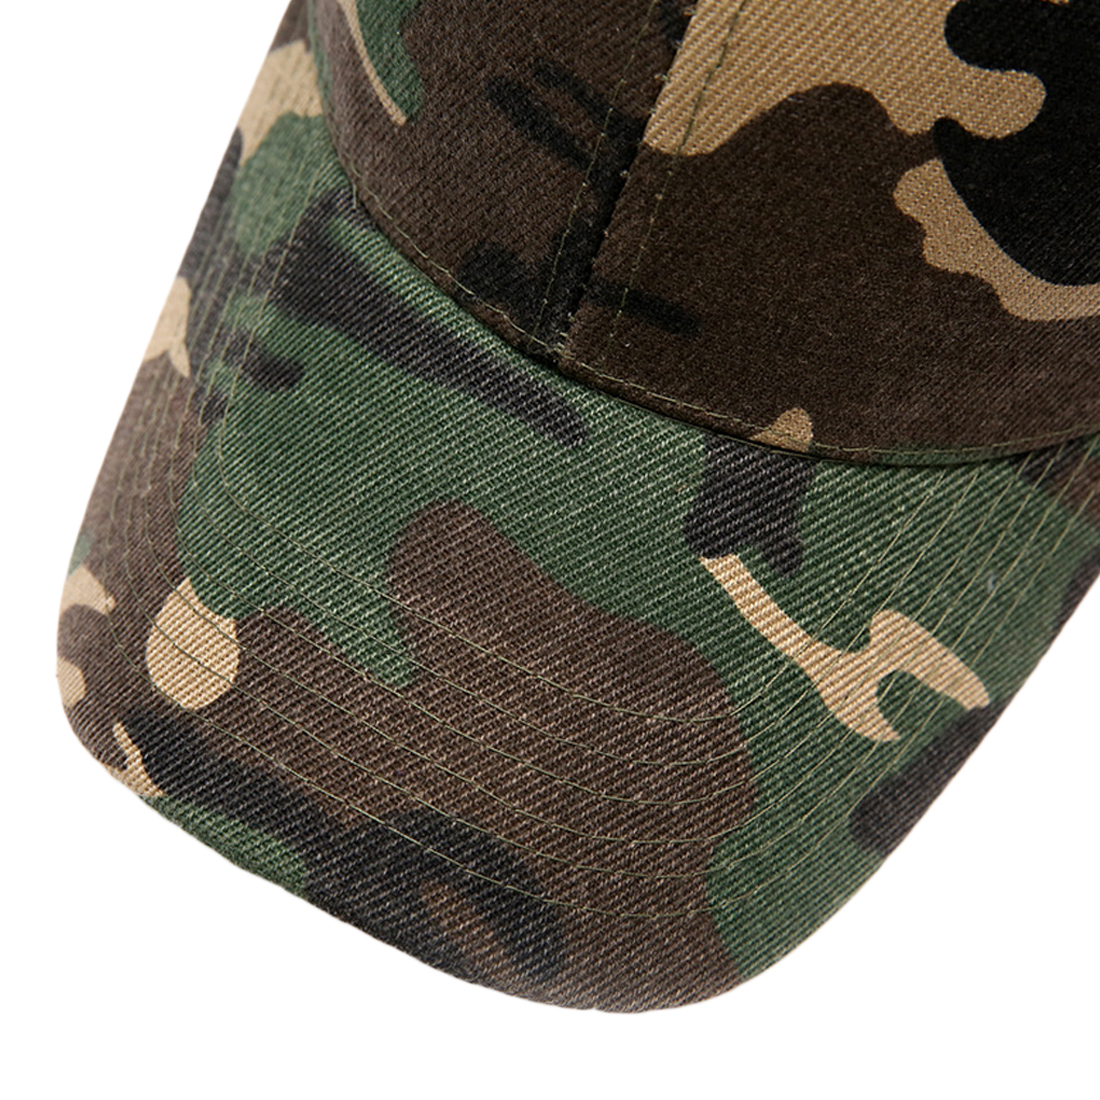 Fashion New Unisex Men Women Snapback Snap back Camo hats Camouflage Cotton Lovers Baseball Caps Casual Walking Hats